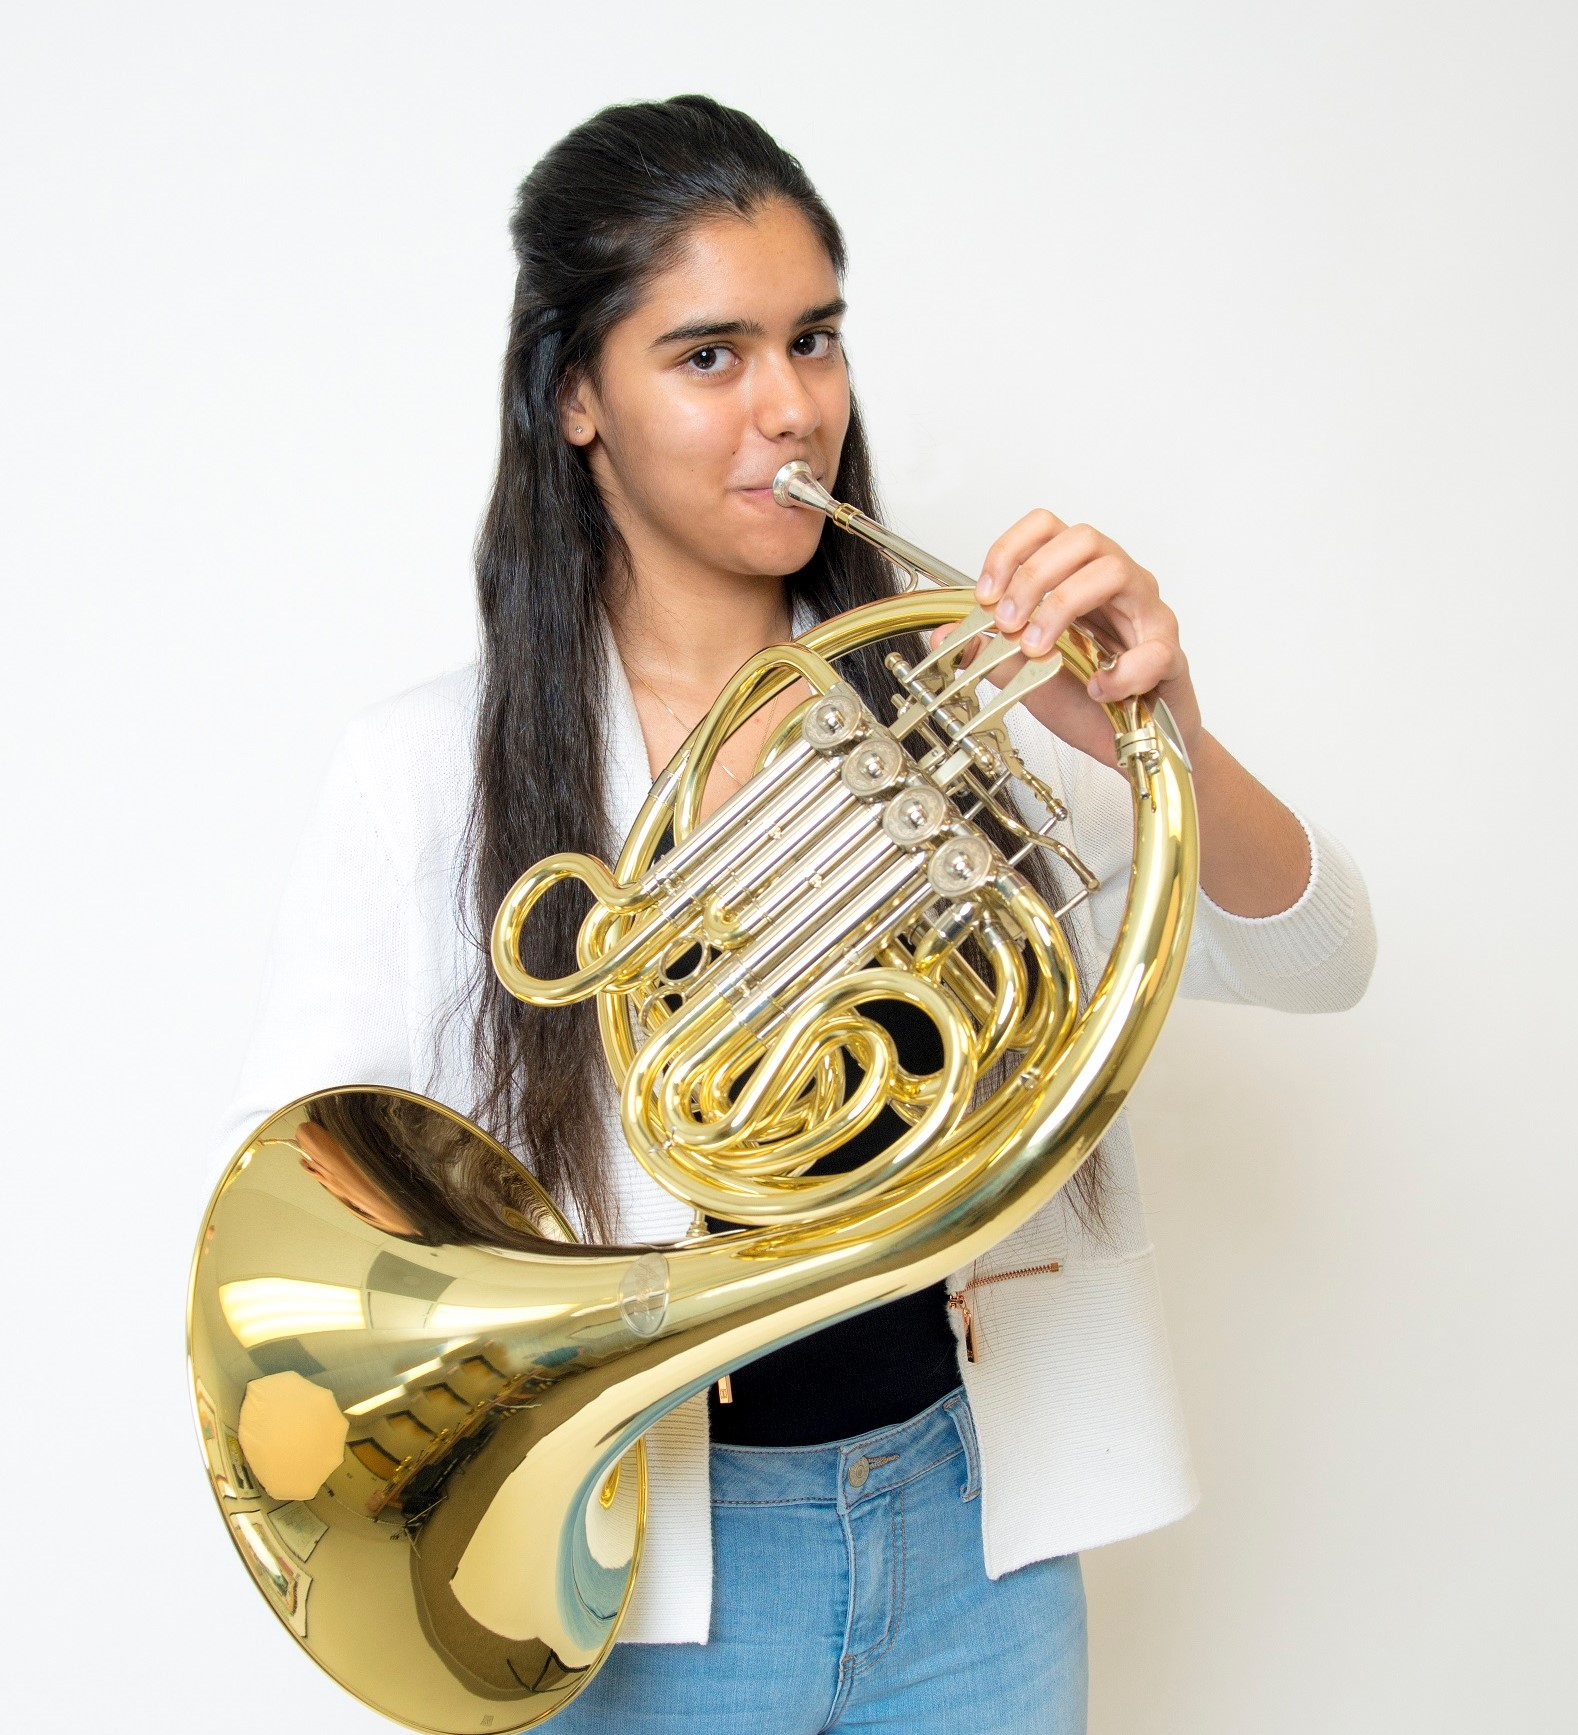 Student Playing the French Horn